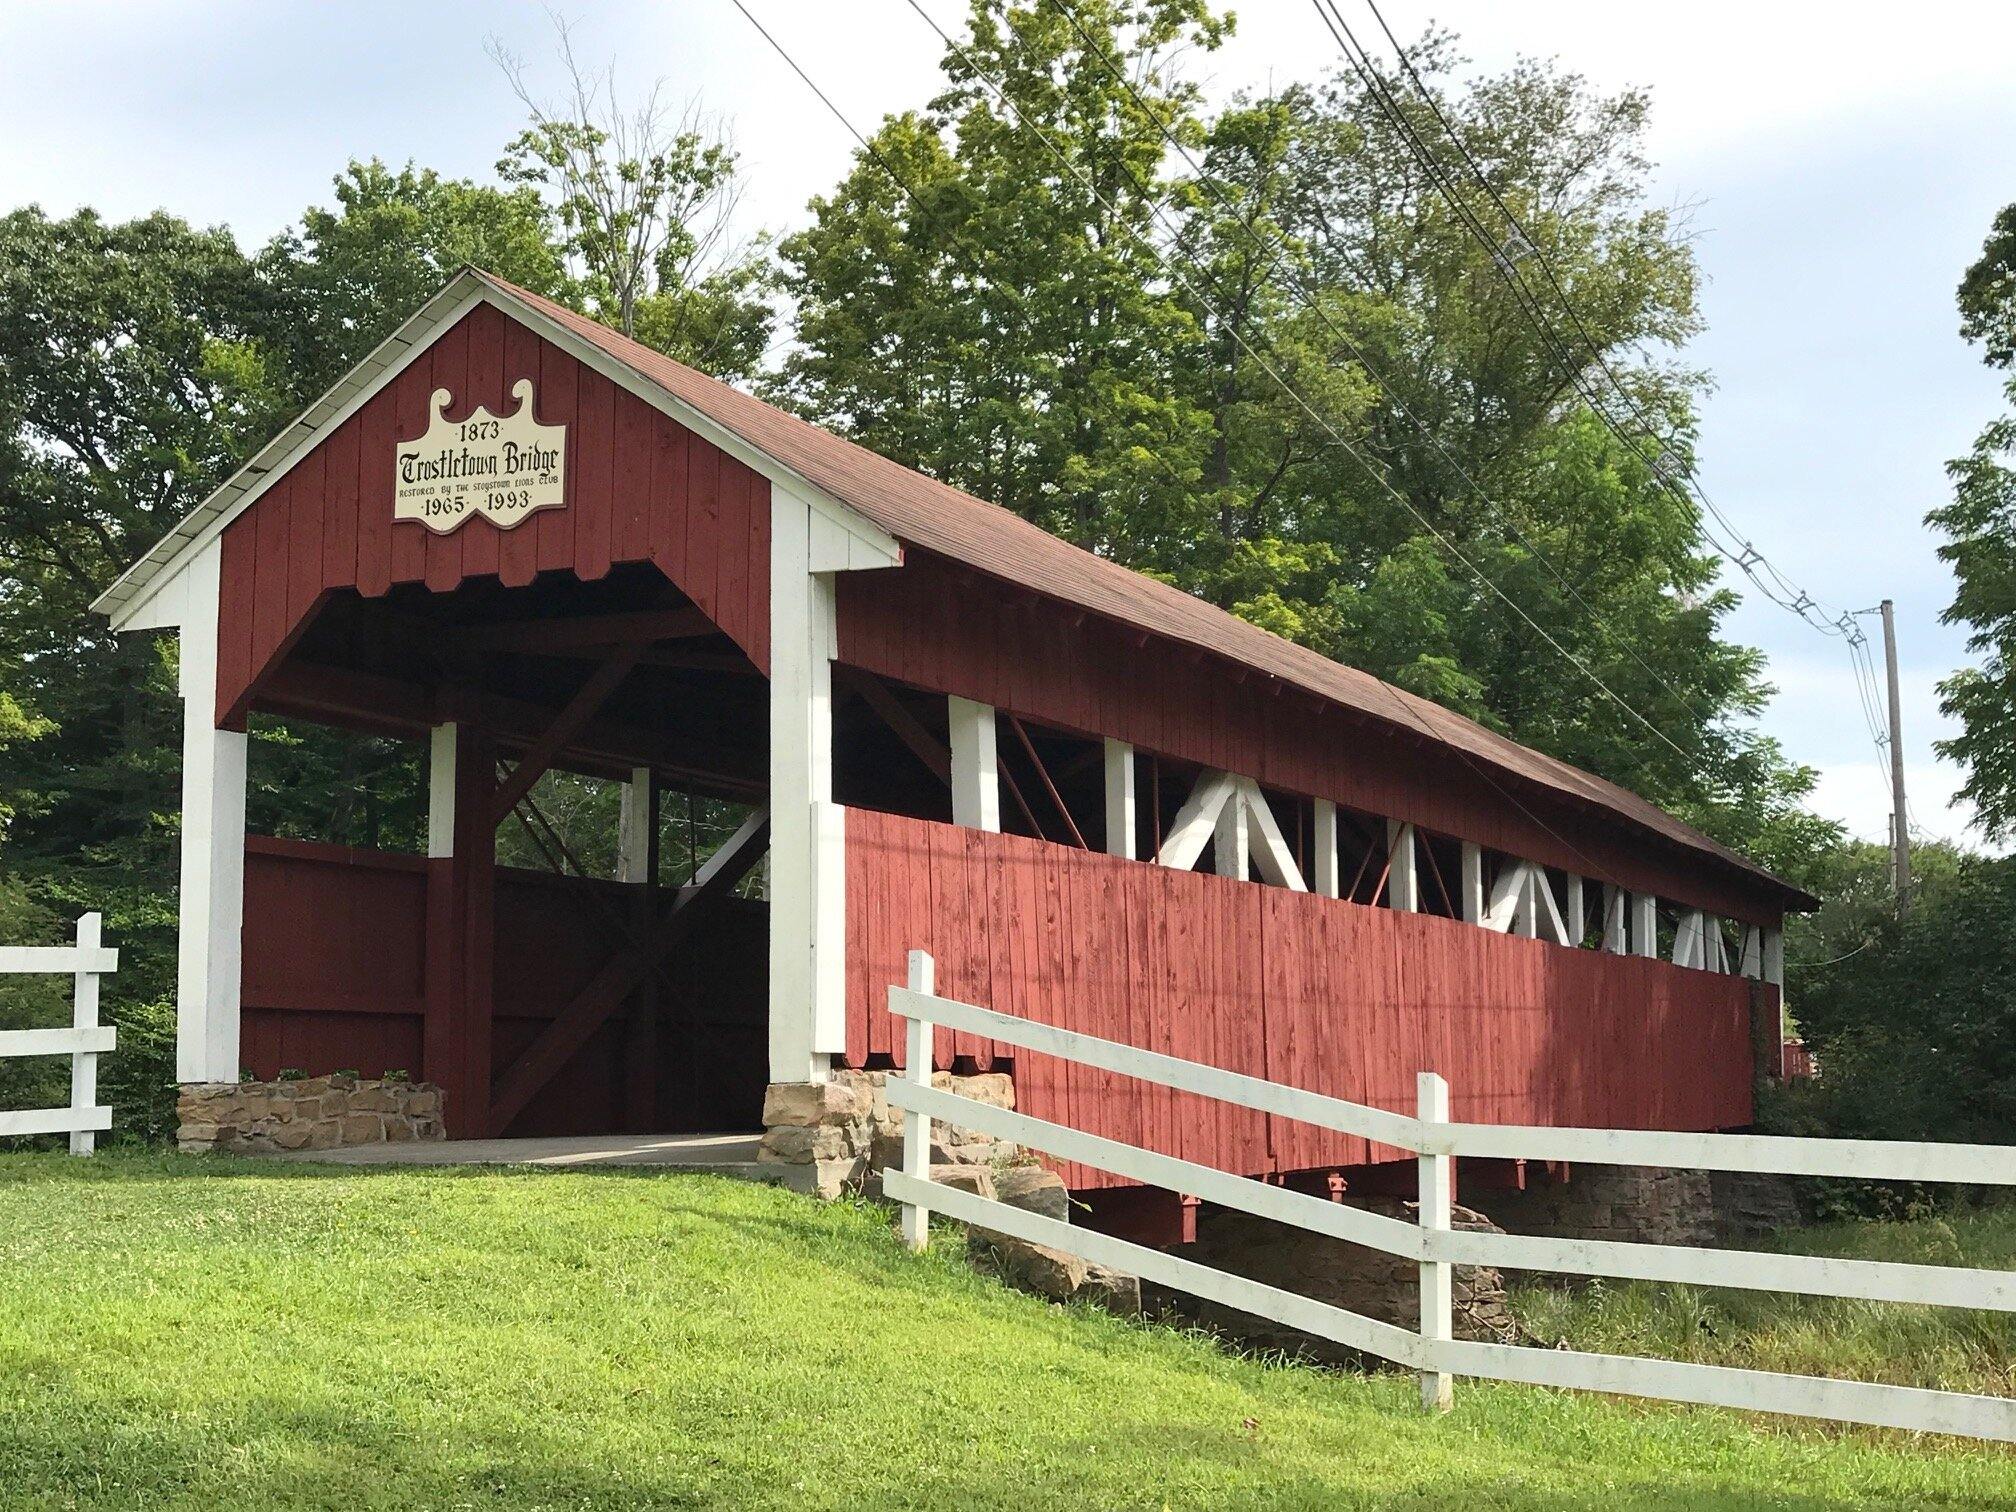 A covered bridge nearby